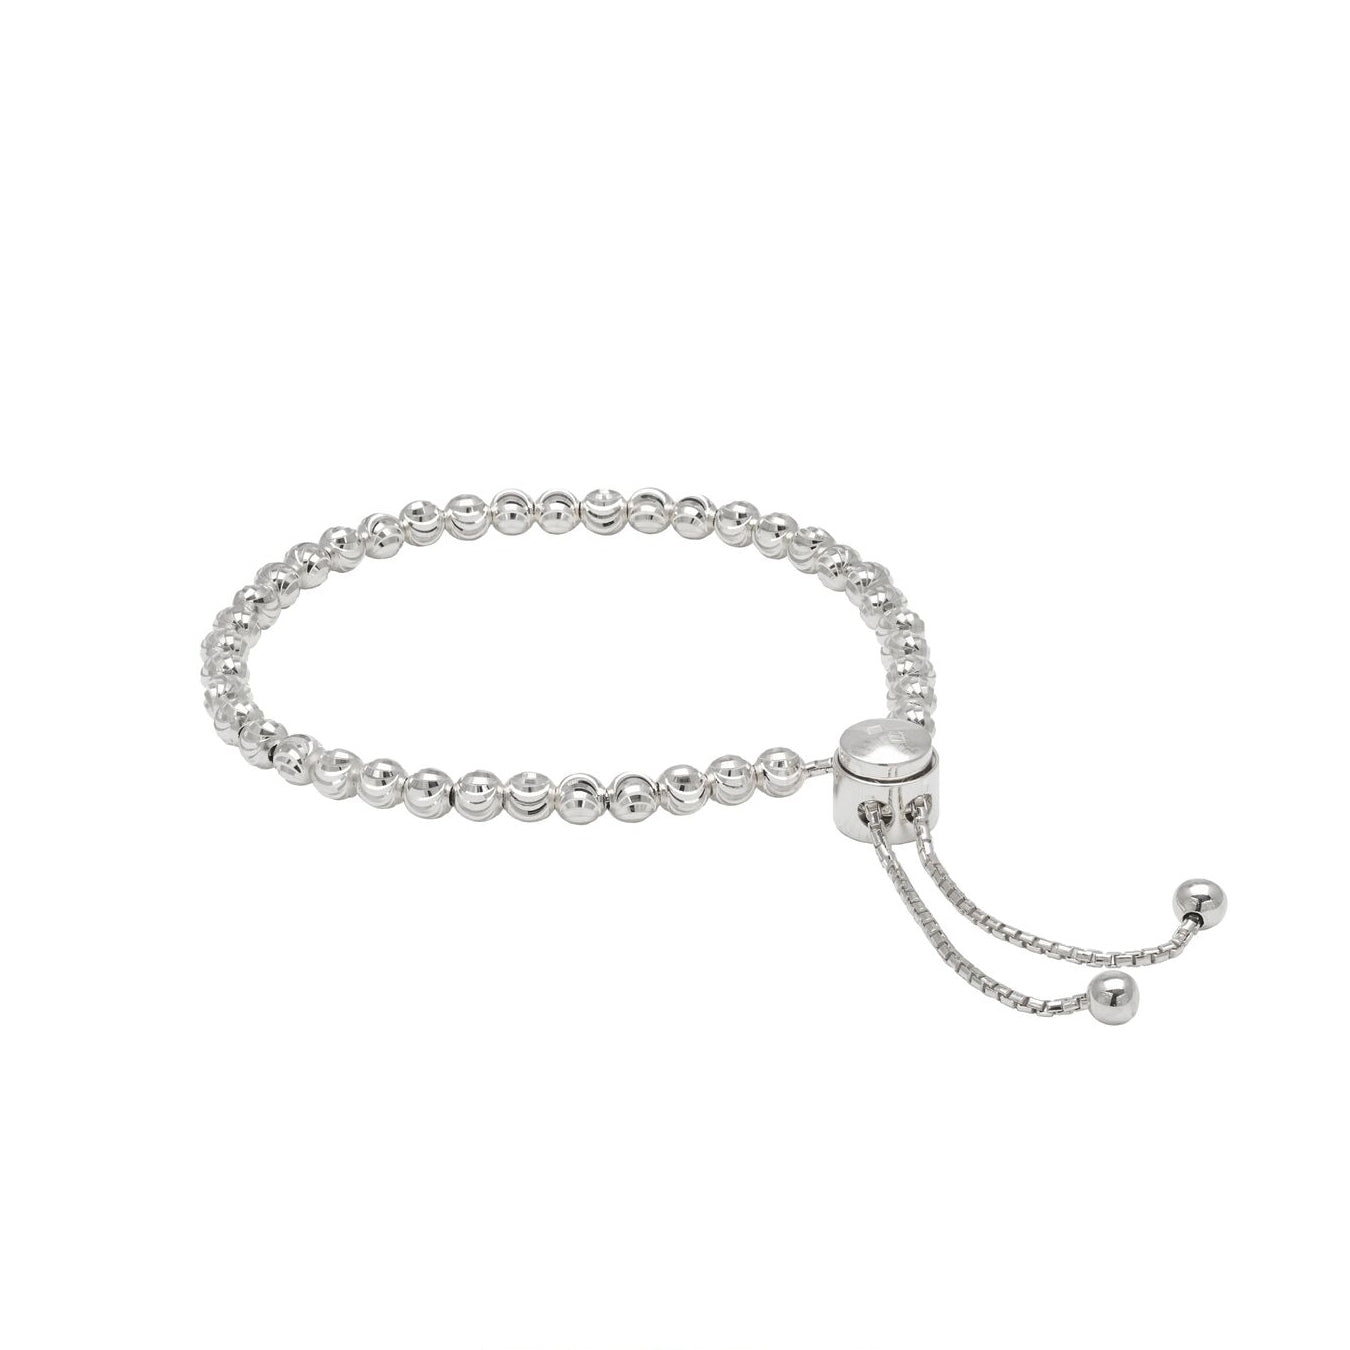 Adjustable Bead Bracelet, Sterling Silver with Platinum Plating